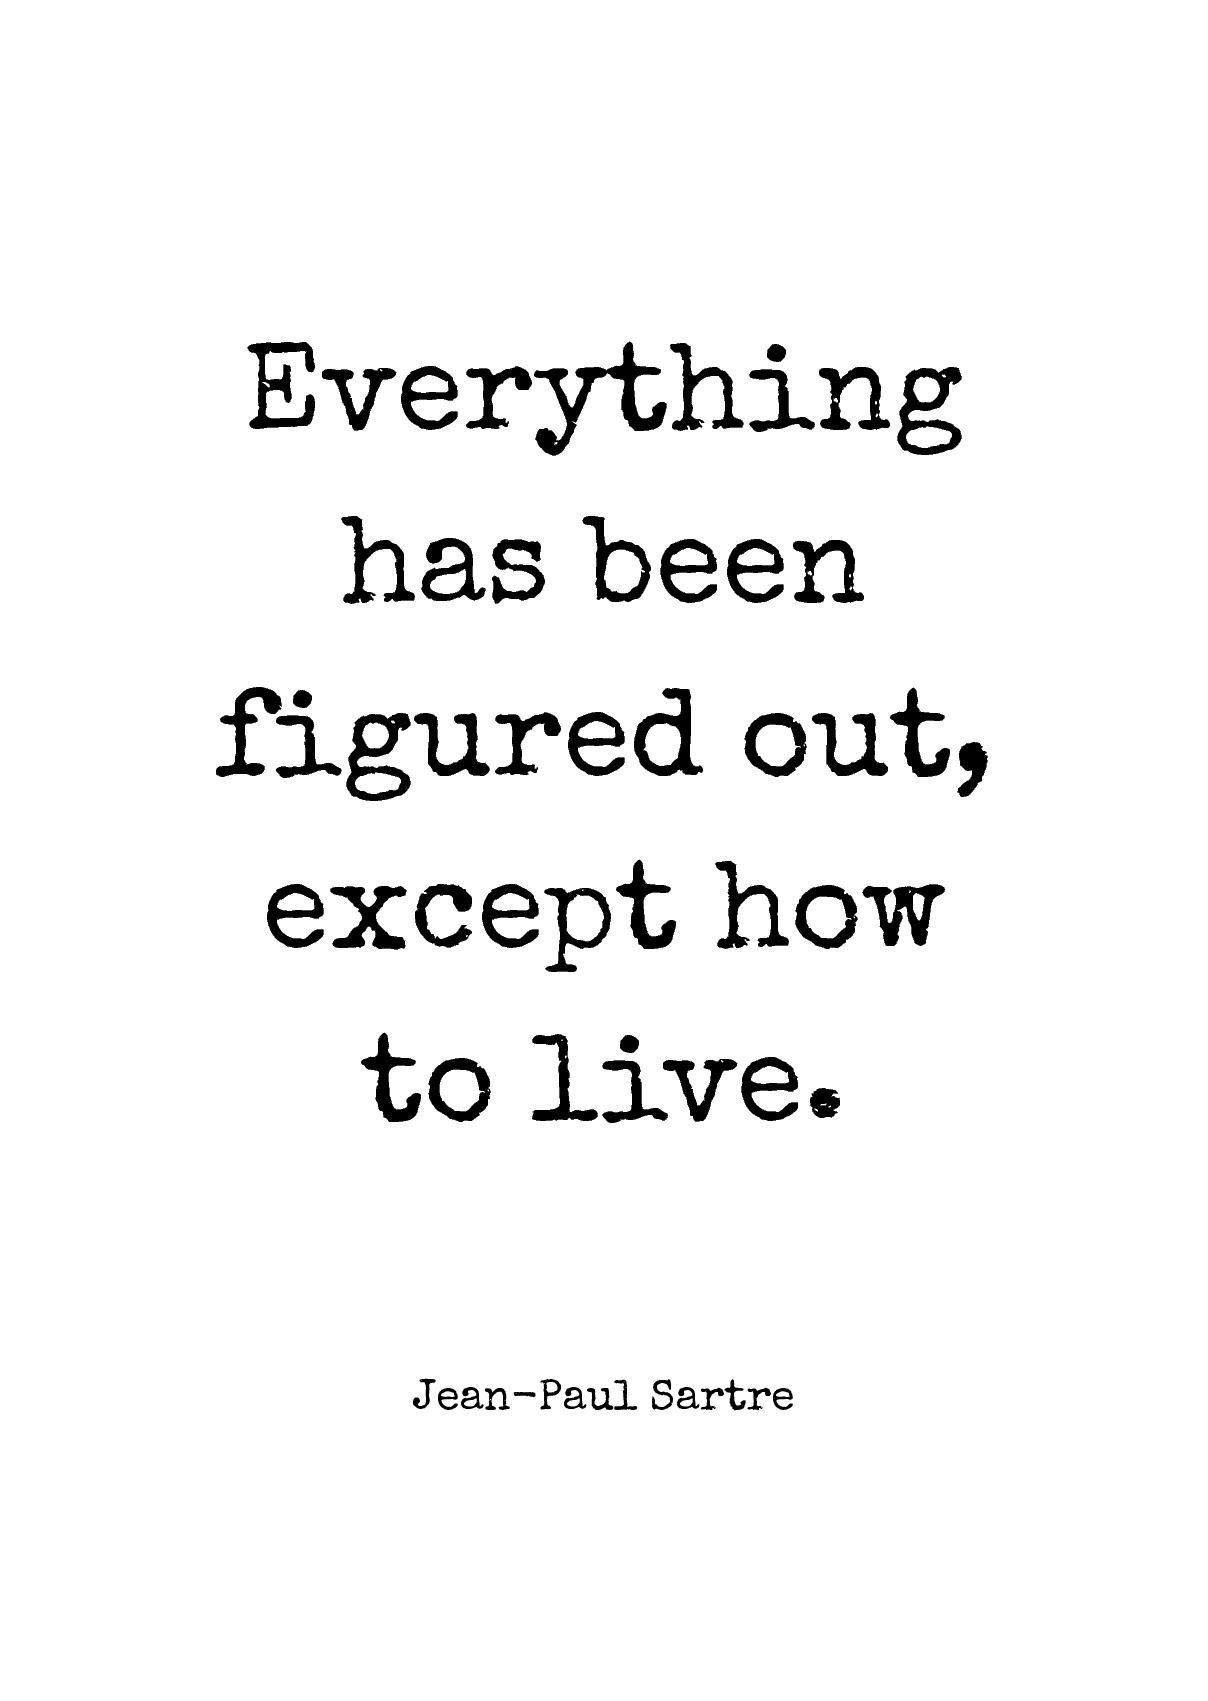 Everything has been figured out, except how to live. by Jean-Paul Sartre #jeanpaulsartre Everything has been figured out, except how to live. by Jean-Paul Sartre printed on high quality matte paper available in different sizes #jeanpaulsartre